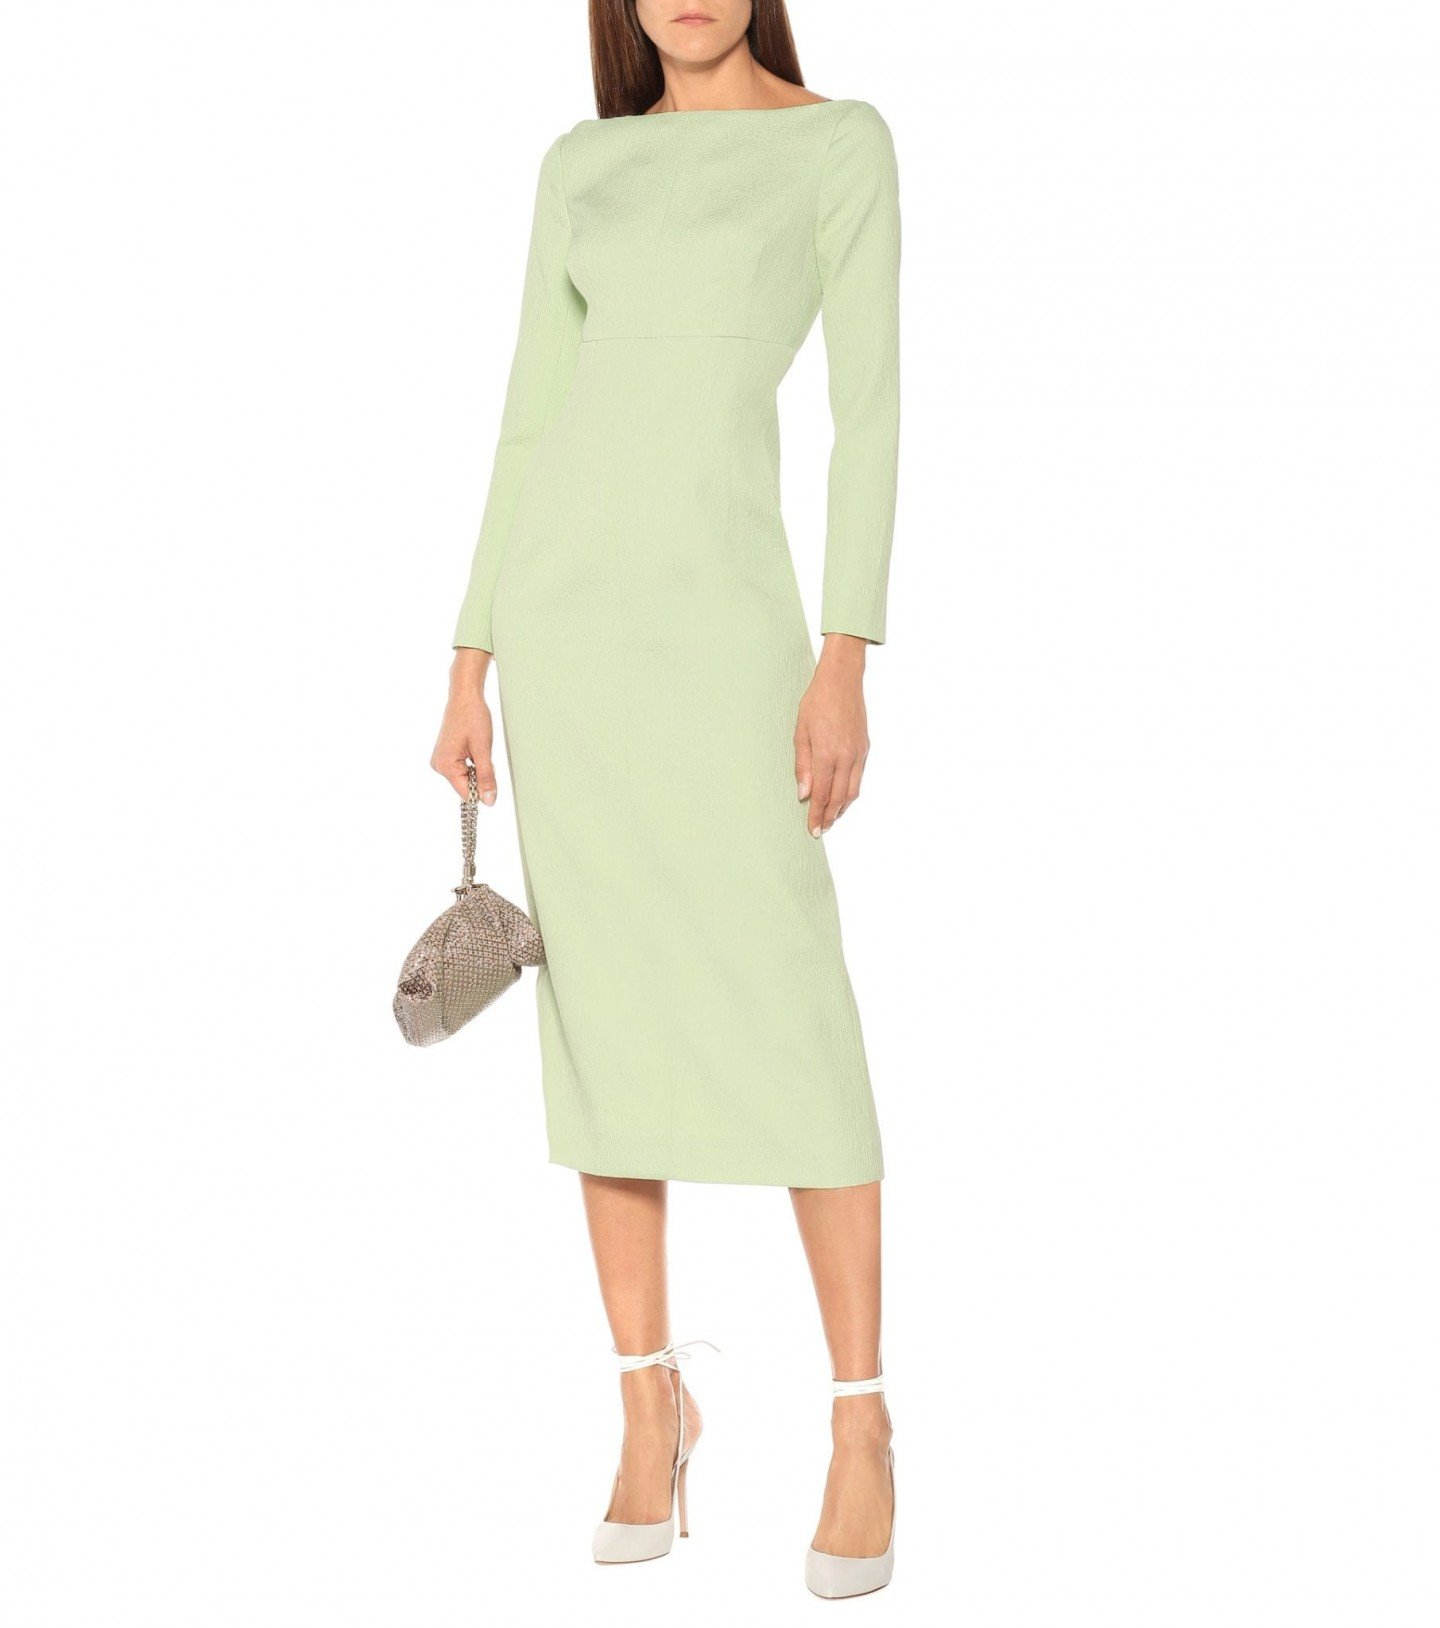 EMILIA WICKSTEAD Asher Boatneck Cloqué Midi Dress